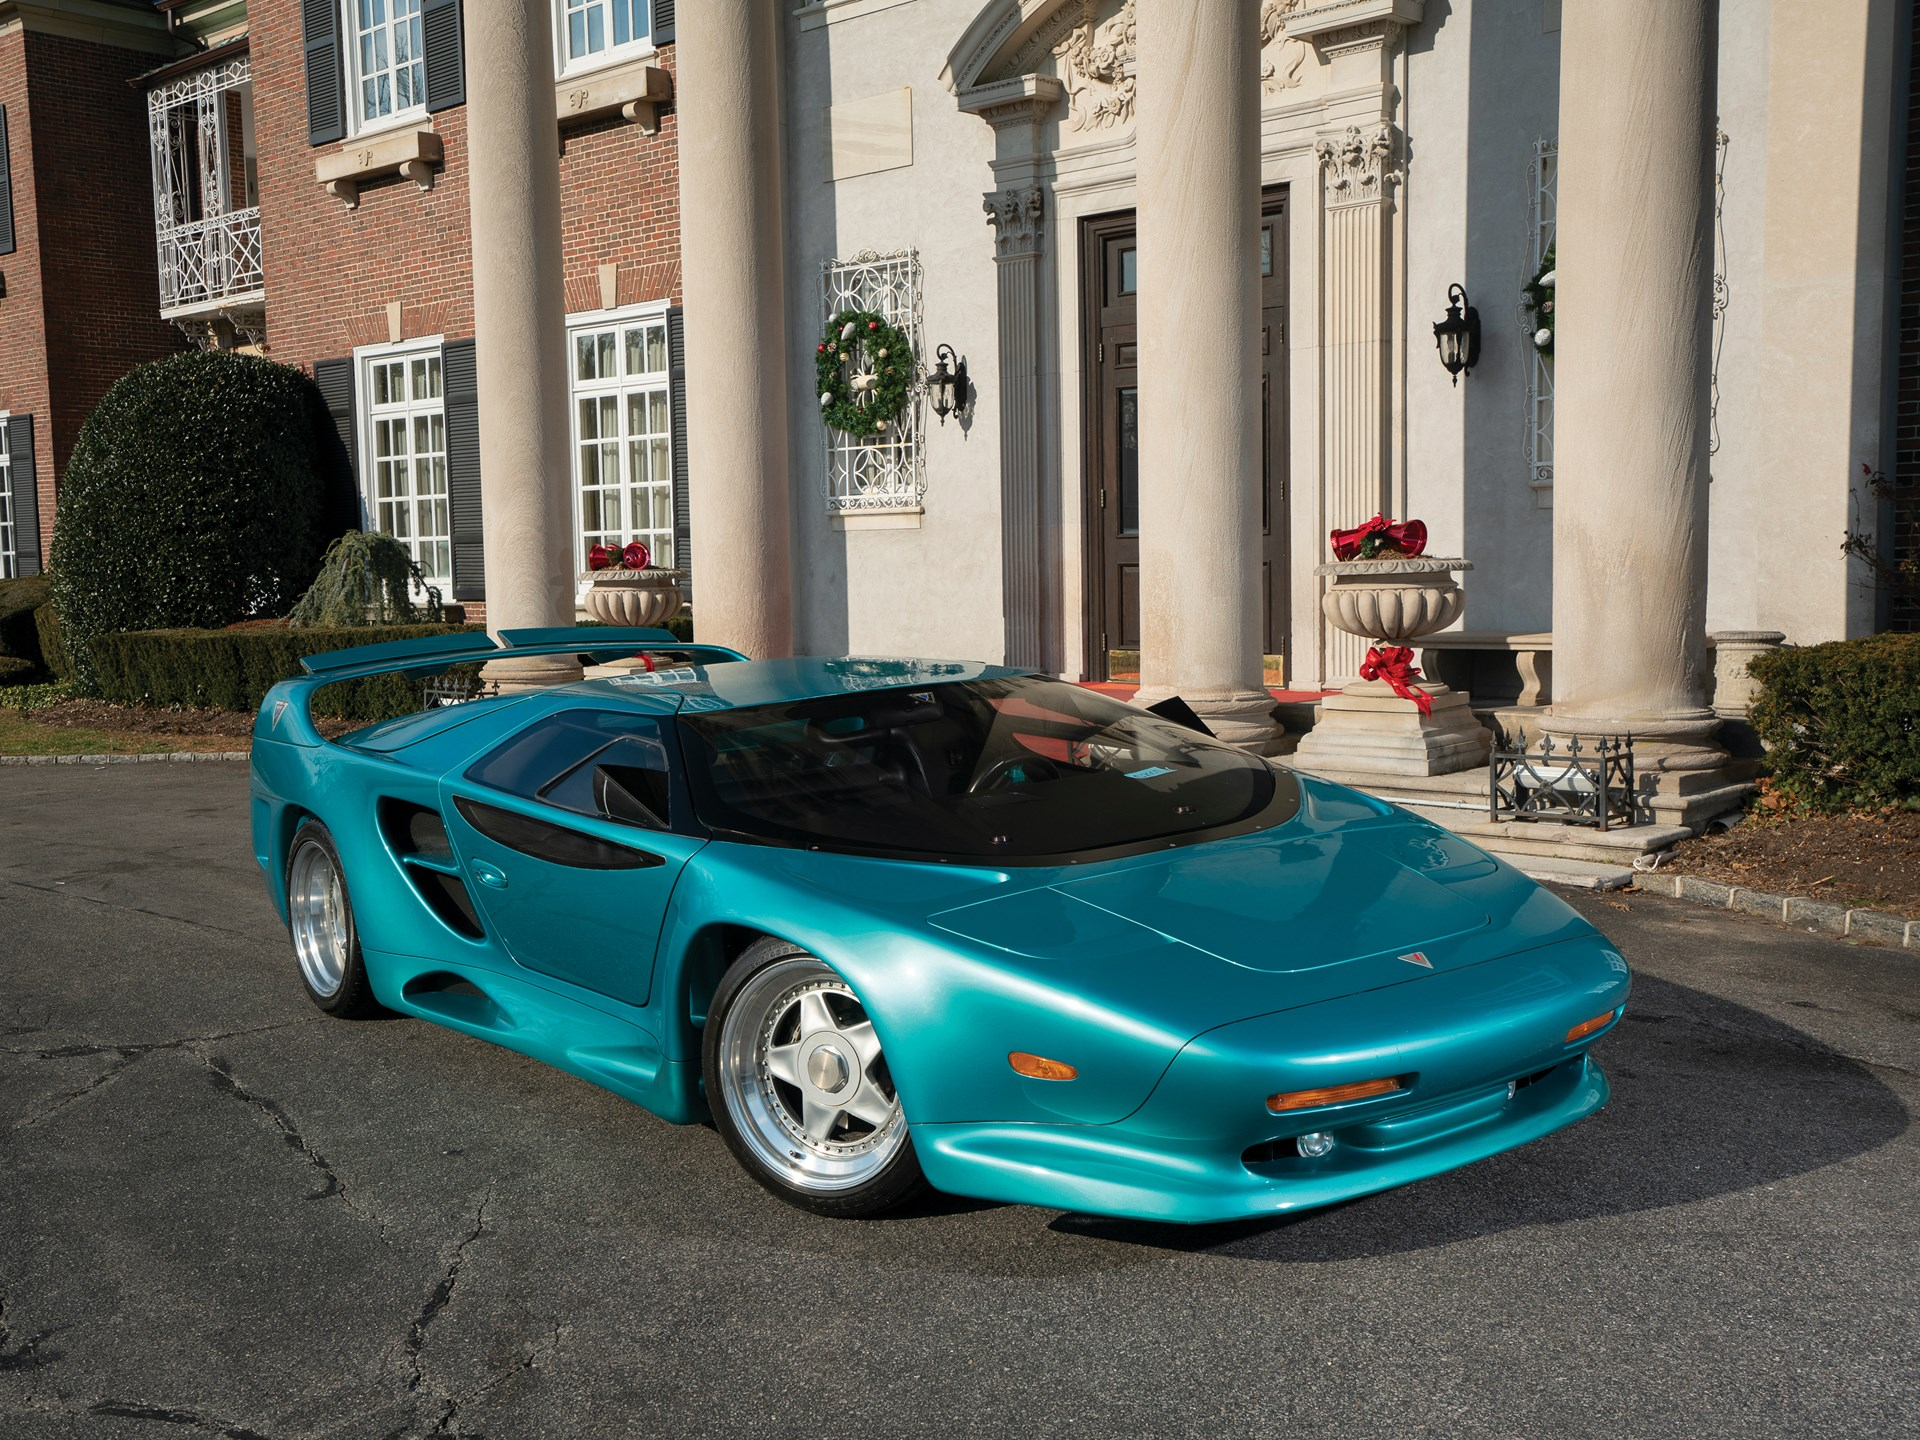 1993 Vector Avtech Wx 3 Prototype Top Speed Producing More Engine Power How Car Engines Work Howstuffworks